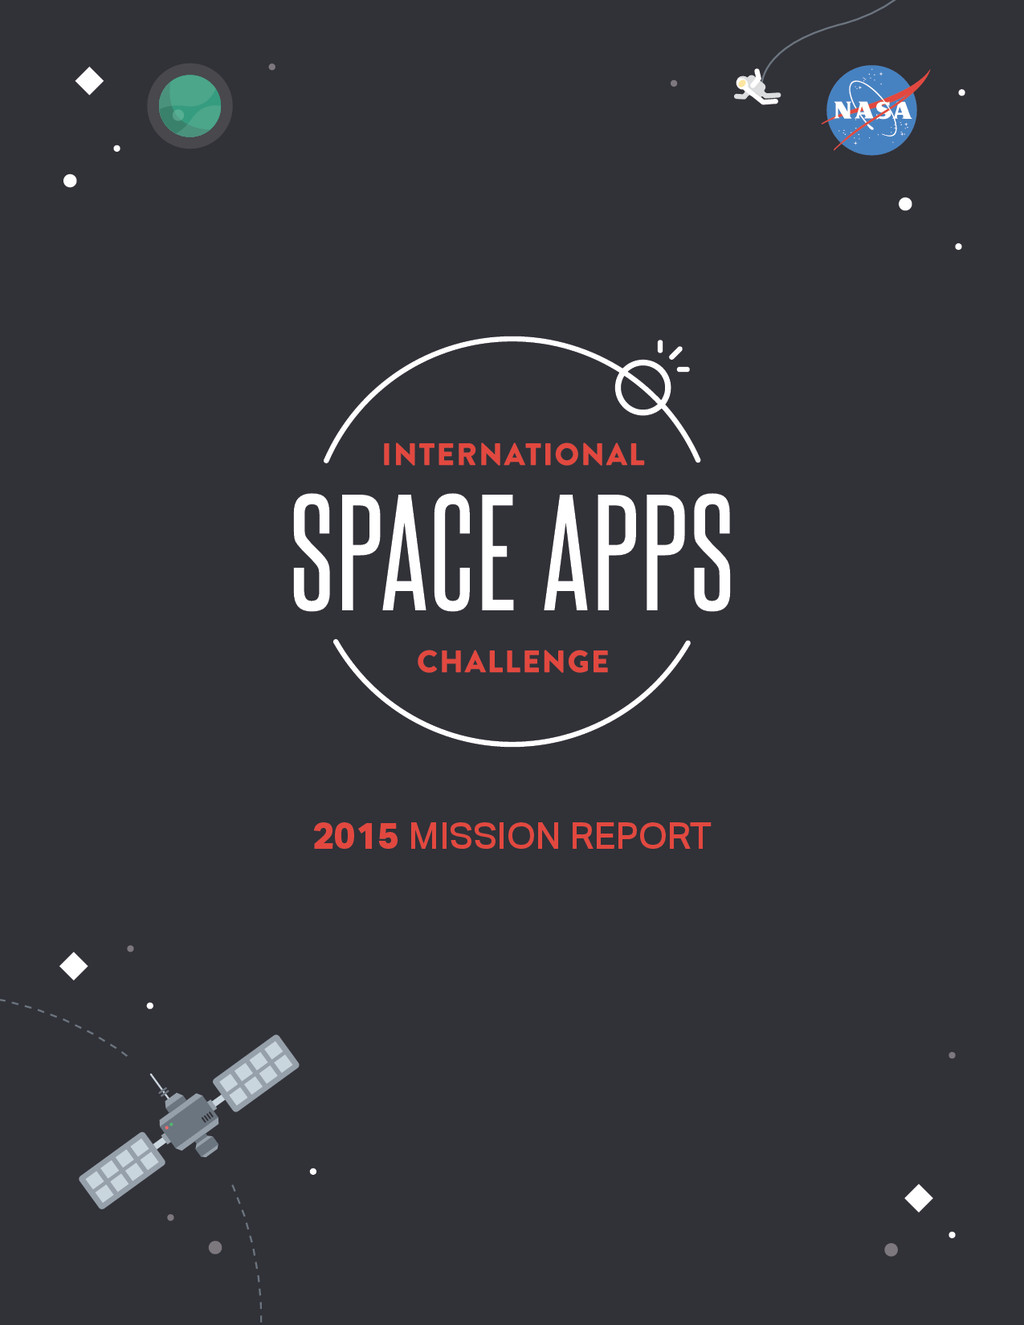 2015 MISSION REPORT